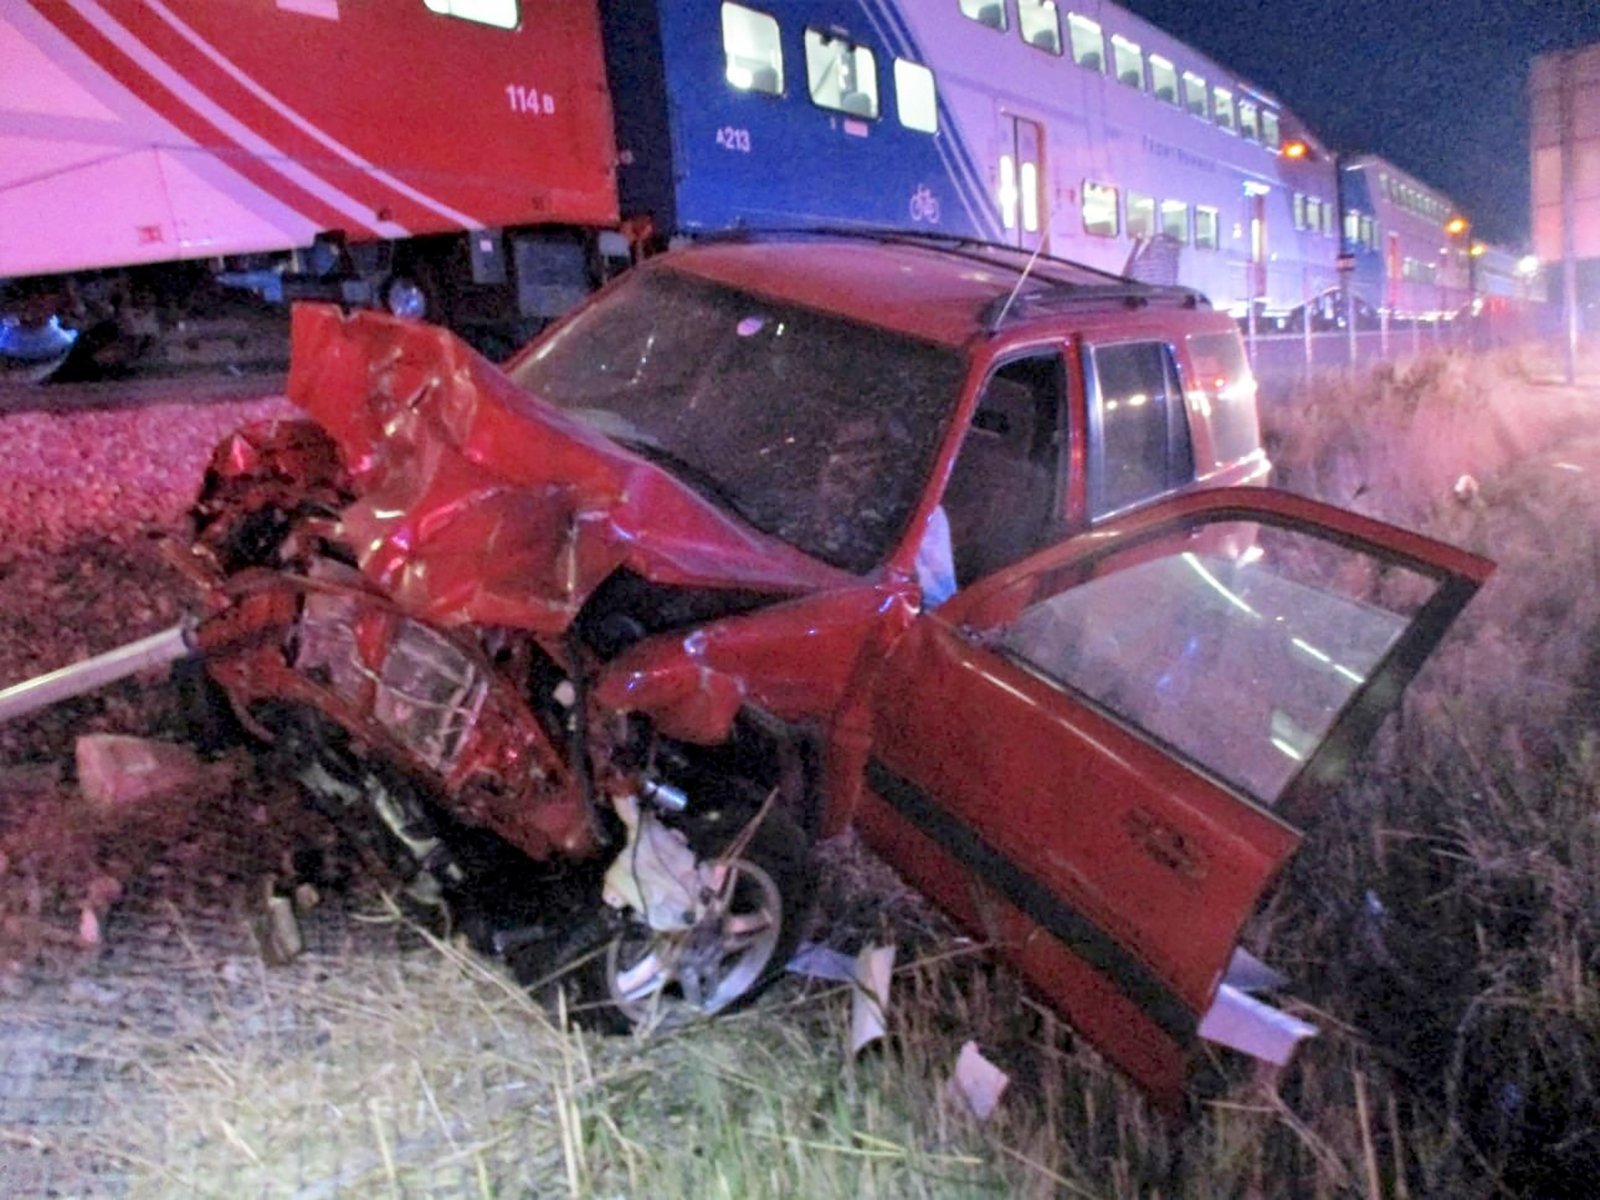 A state trooper pulled a man from his car seconds before it was hit by a train